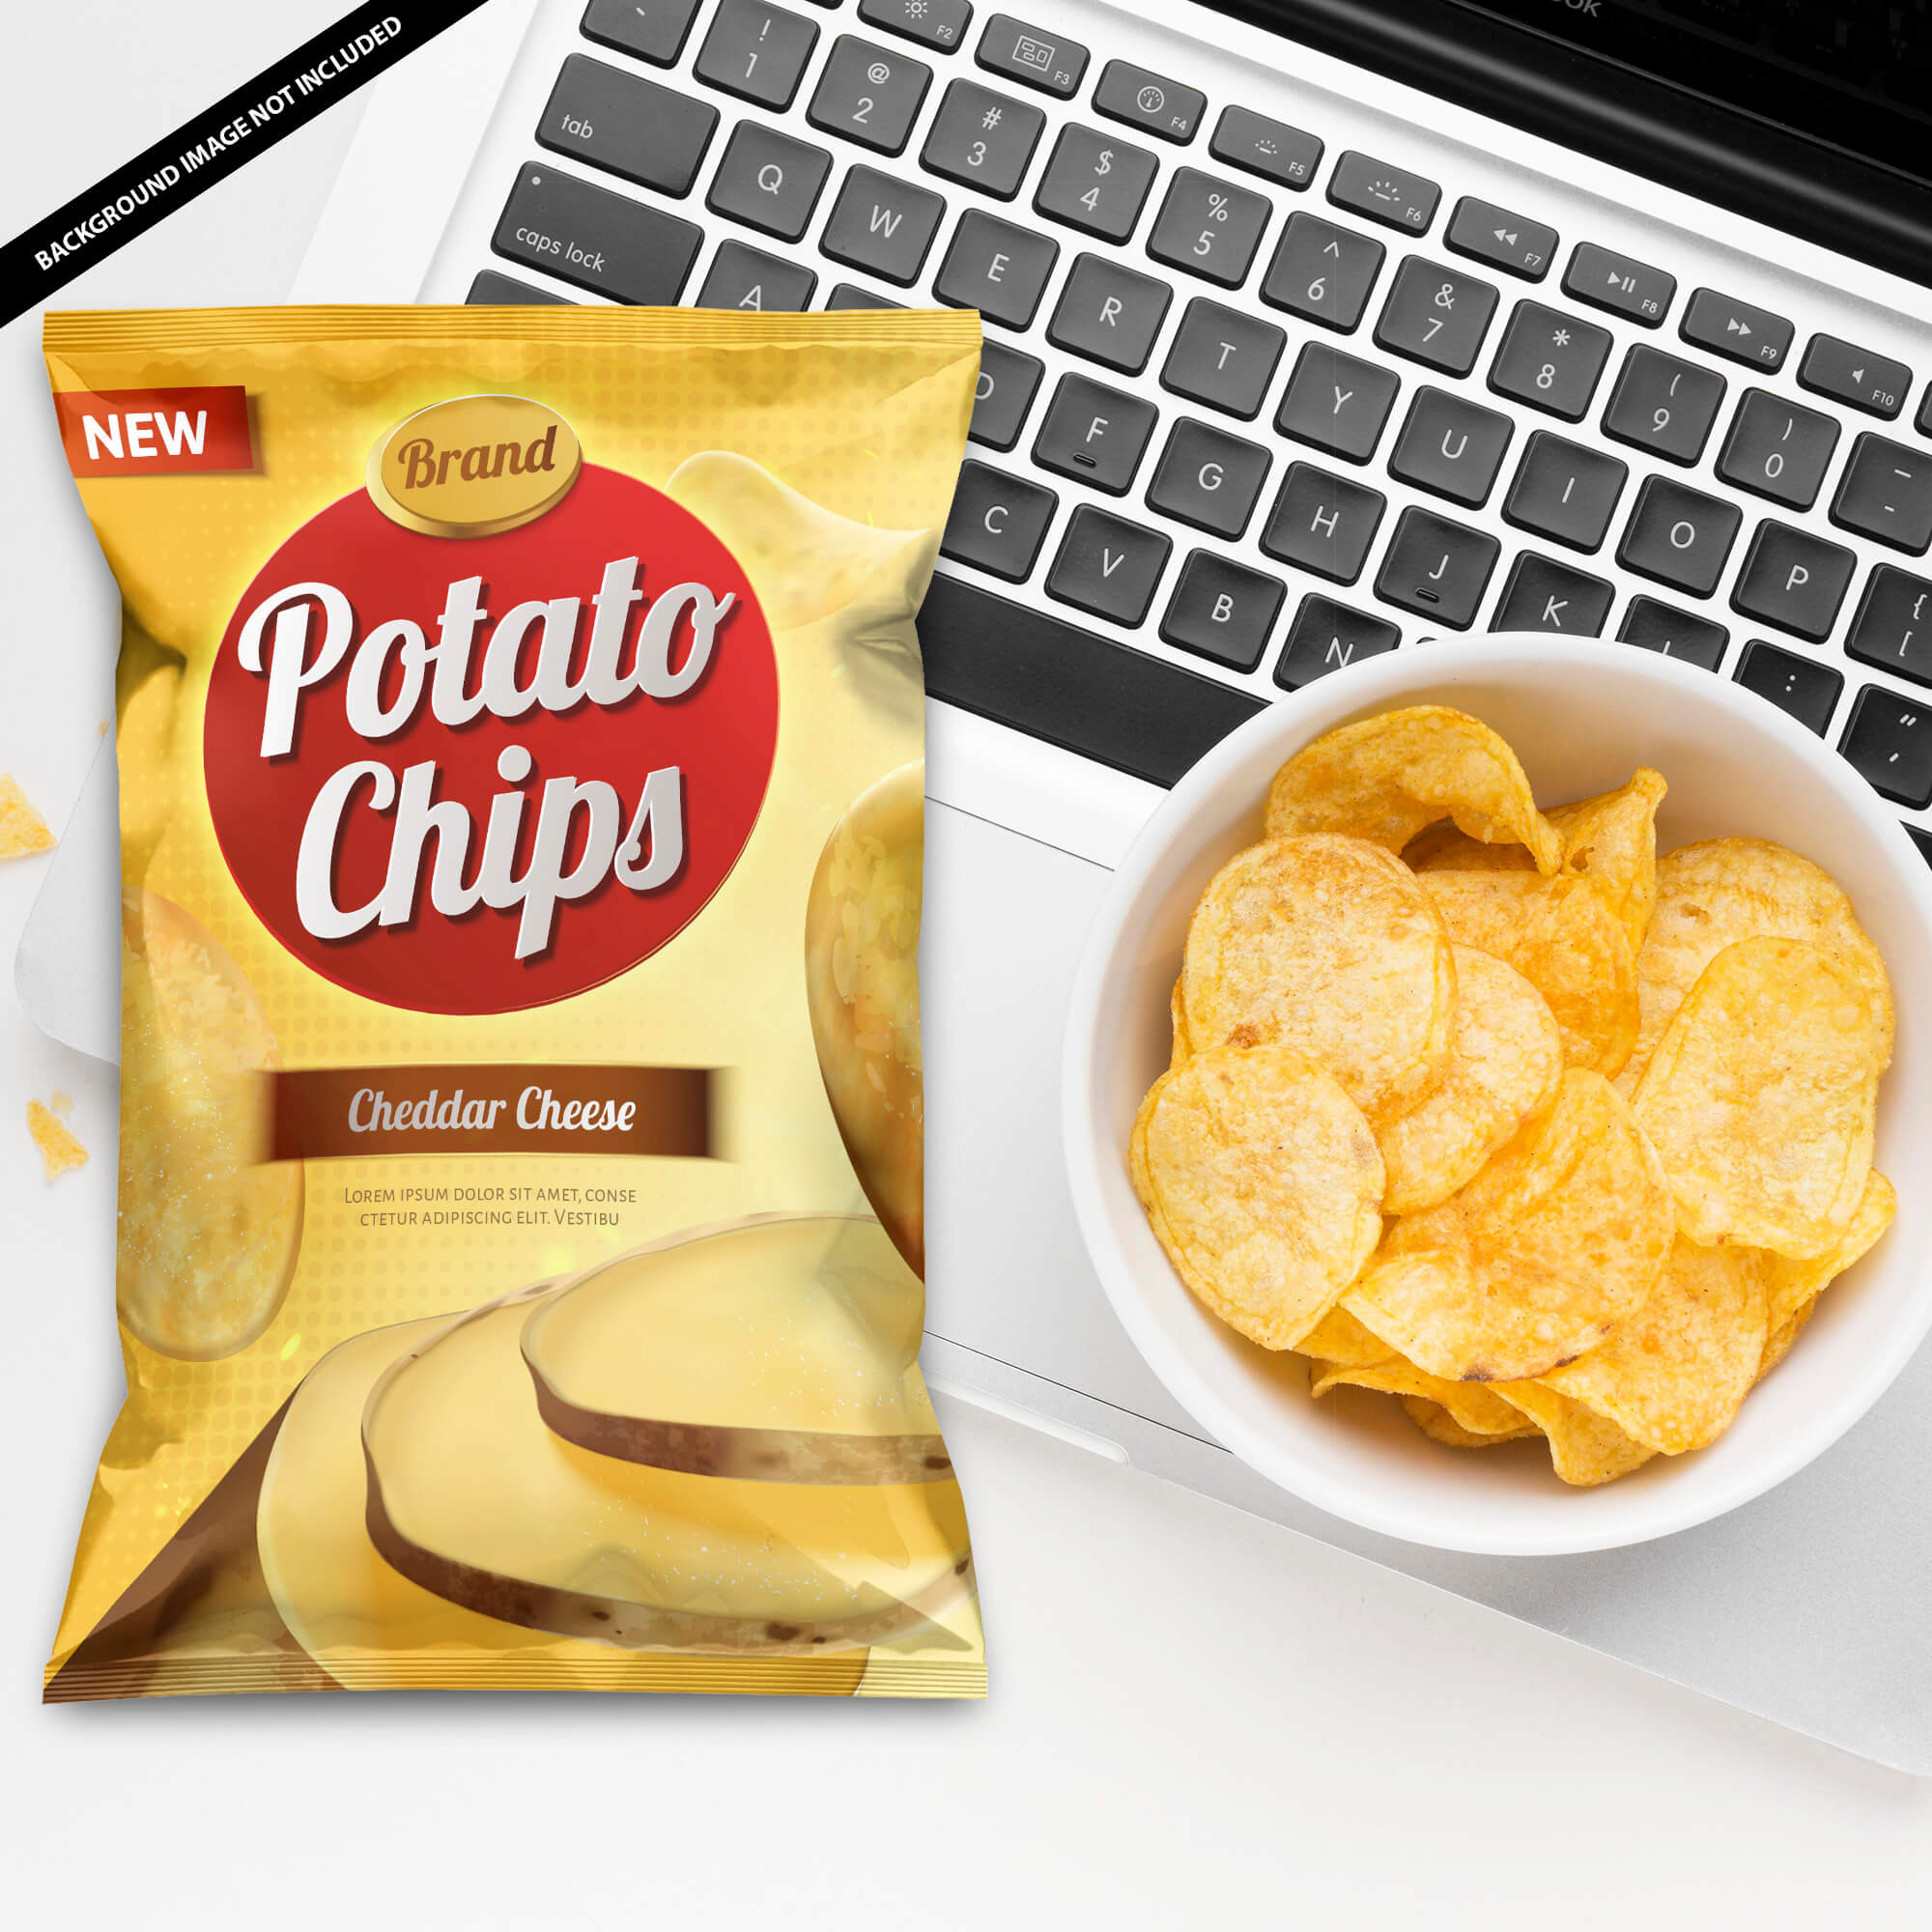 Free Chips Mockup PSD Template